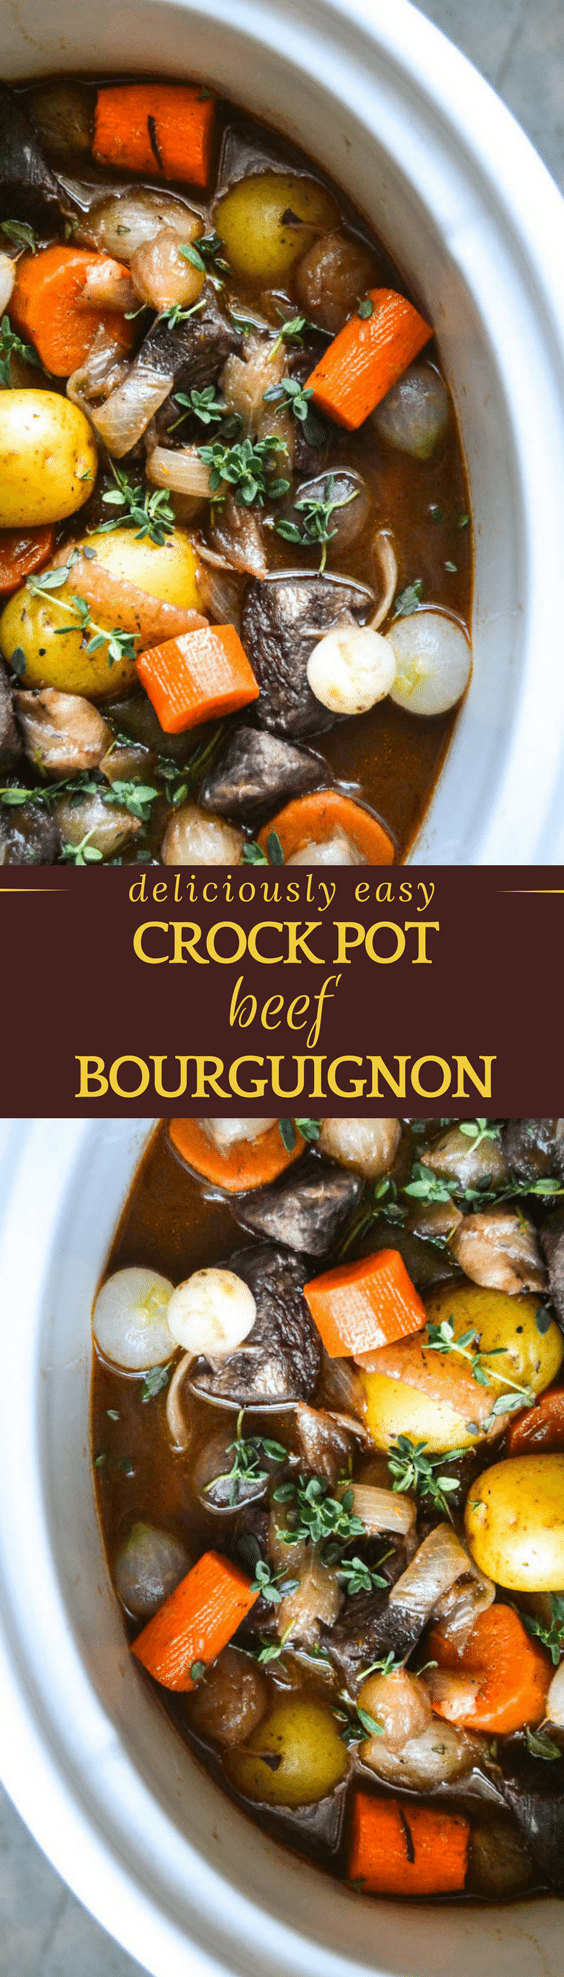 Crock Pot Beef Bourguignon The View From Great Island